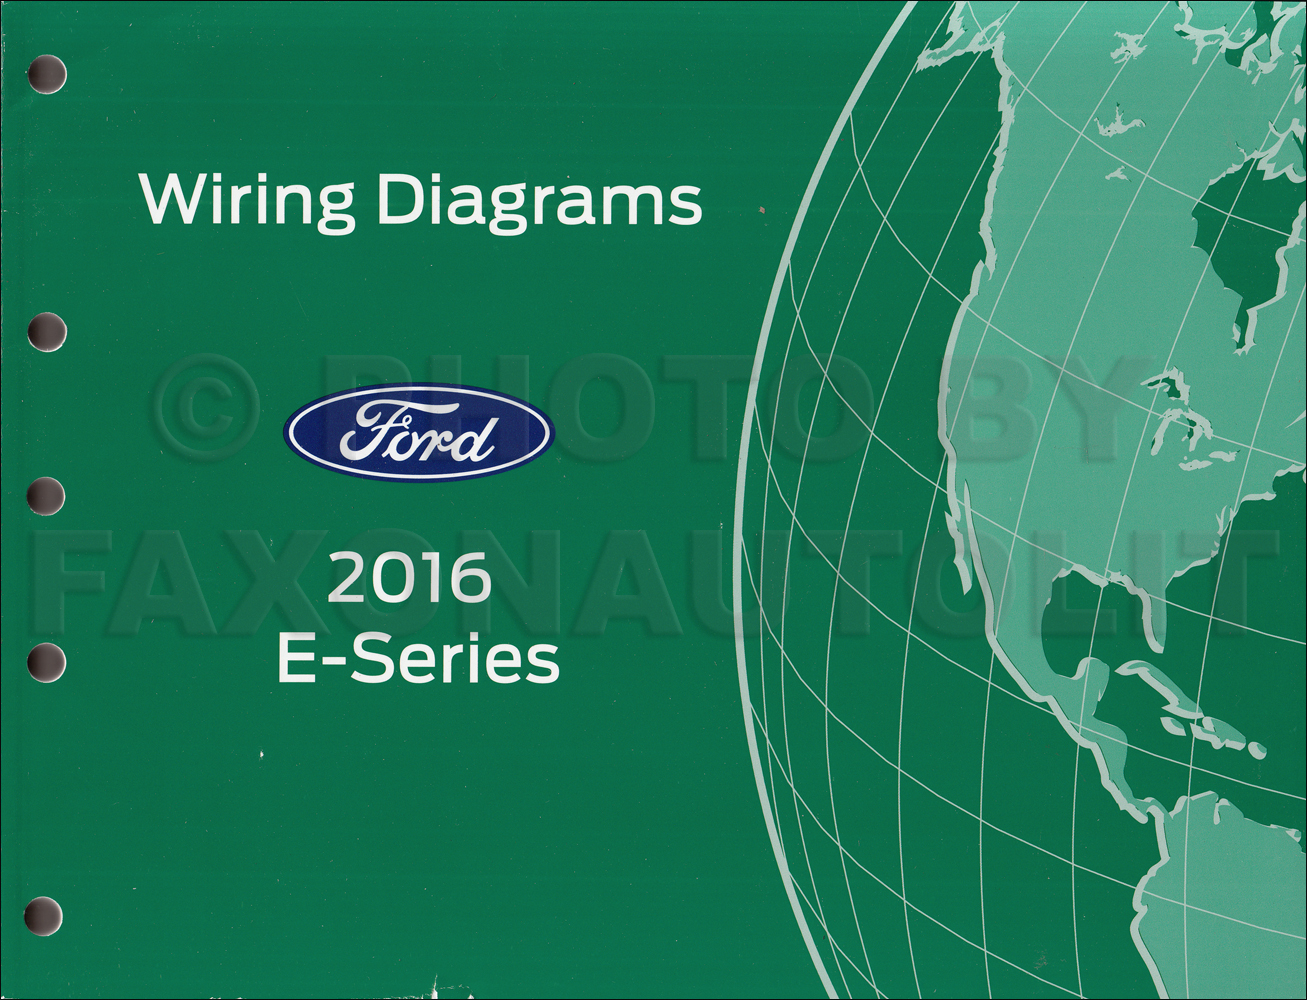 Ford E 450 Wiring Diagram Data F450 2016 350 And Manual Original F